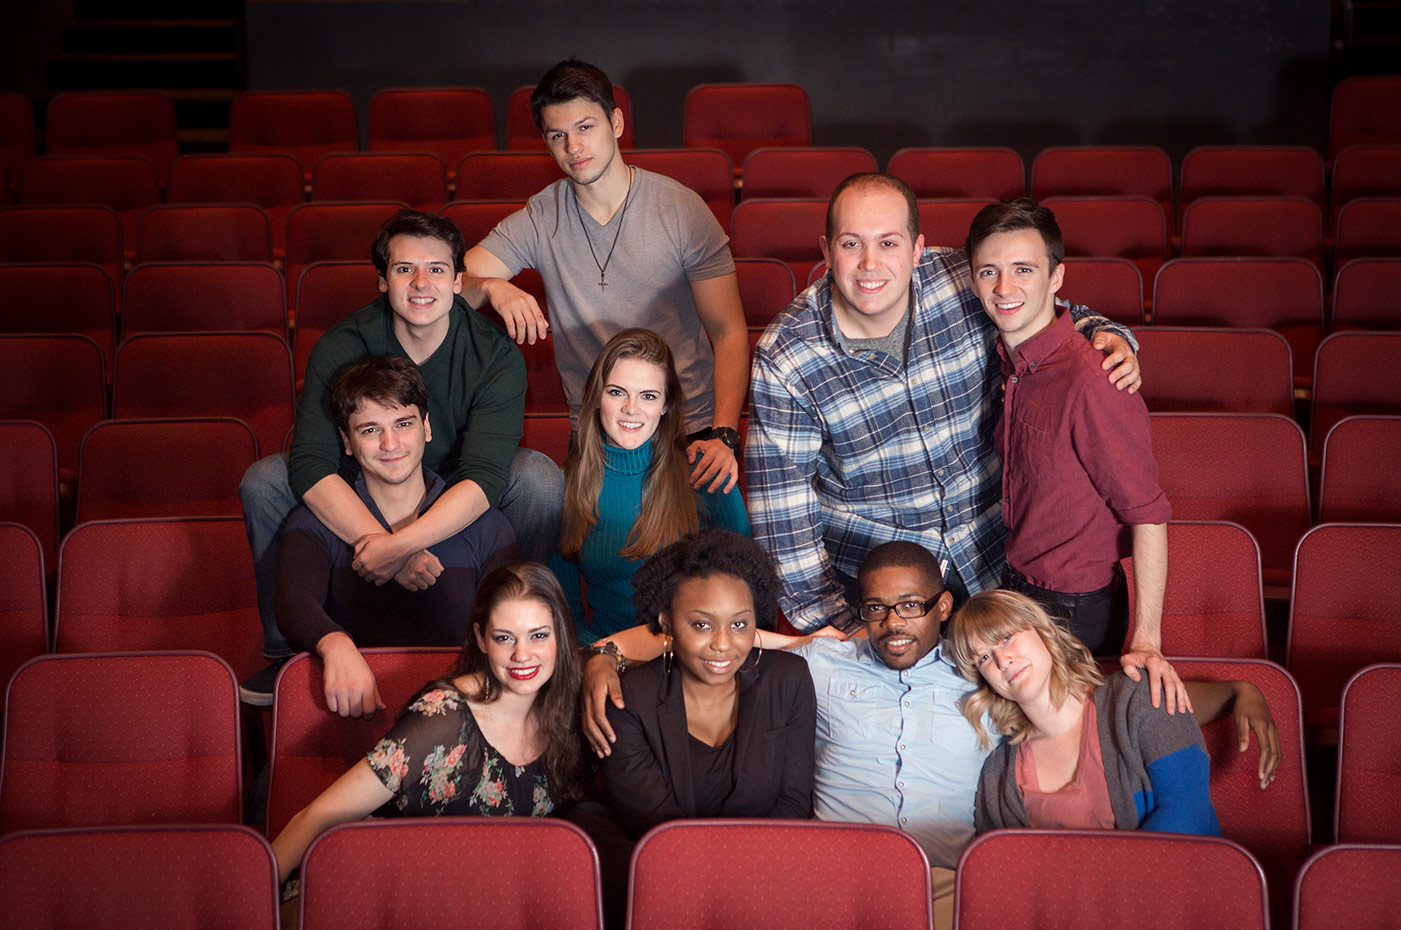 Group of young adults sit in a theatre amongst red chairs, posing for the camera